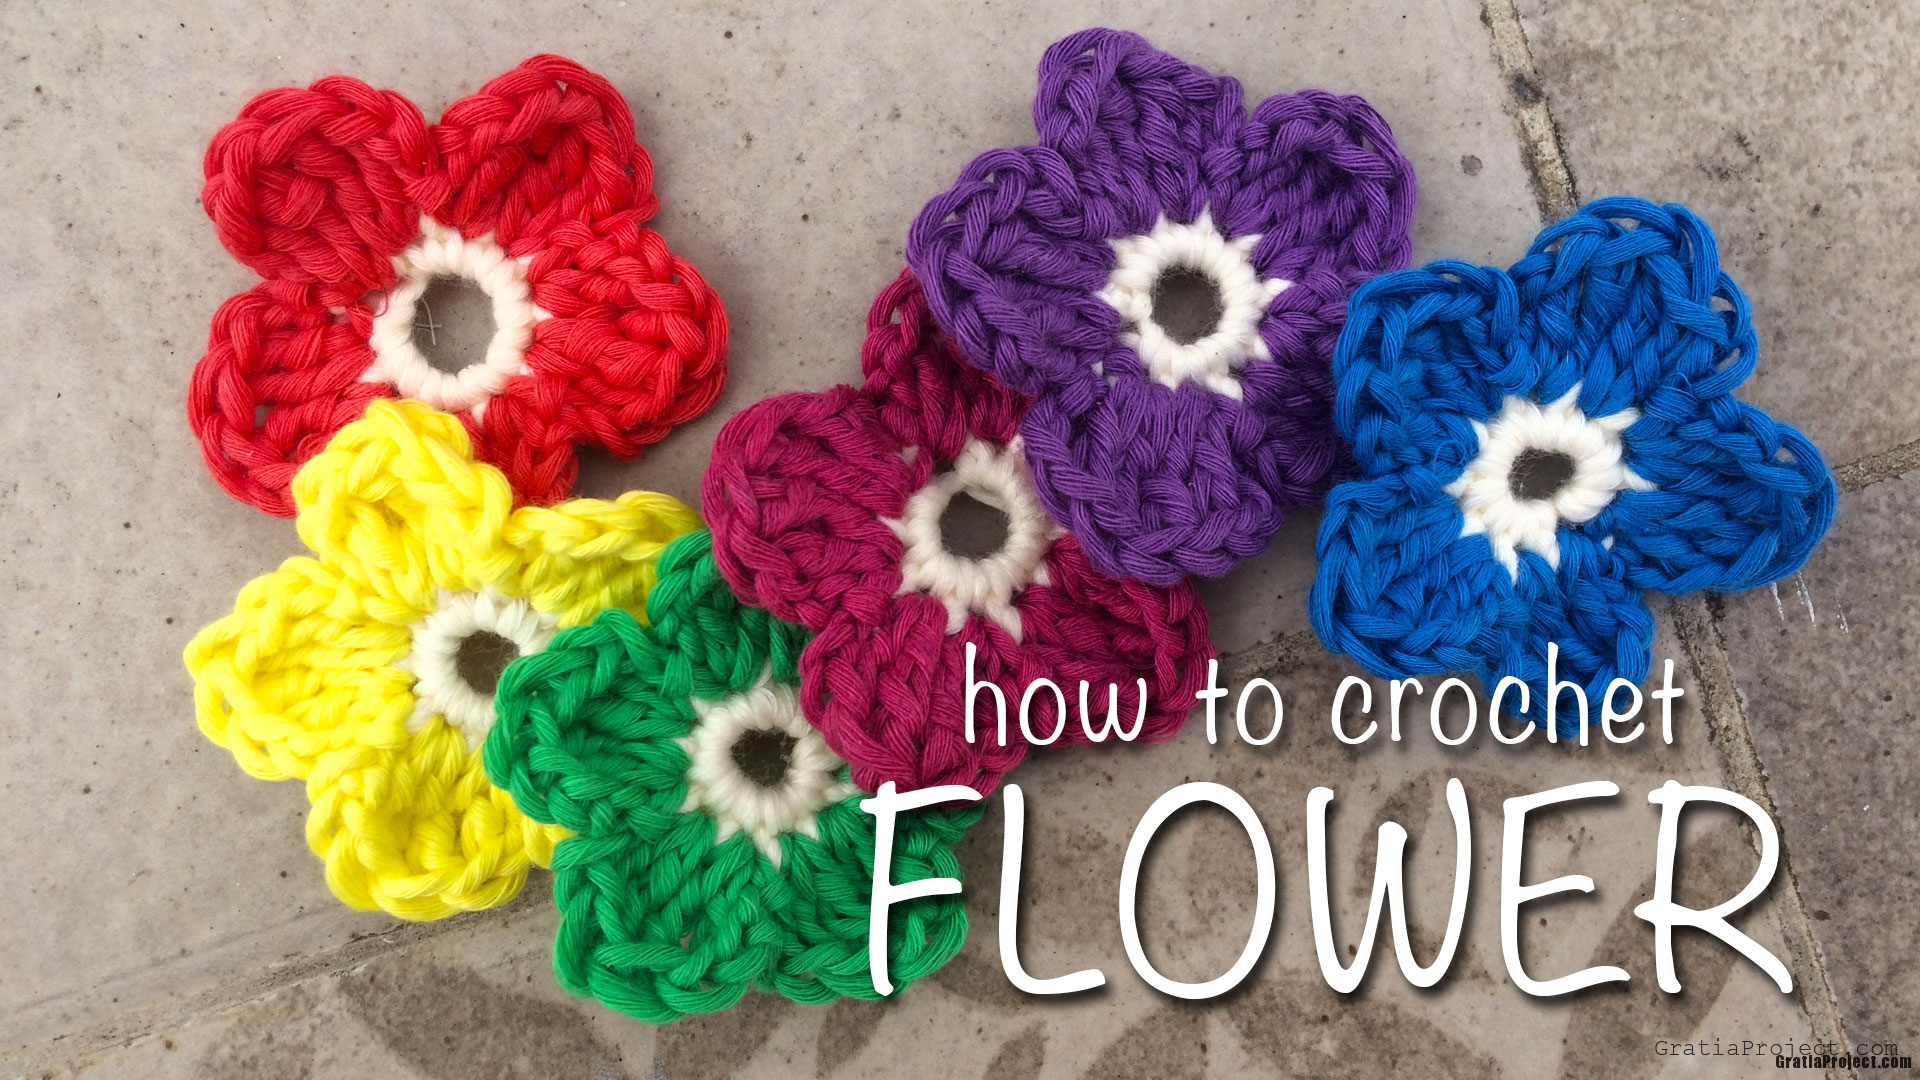 How To Crochet Flower (for Beginner) Stepbystep Video Tutorial